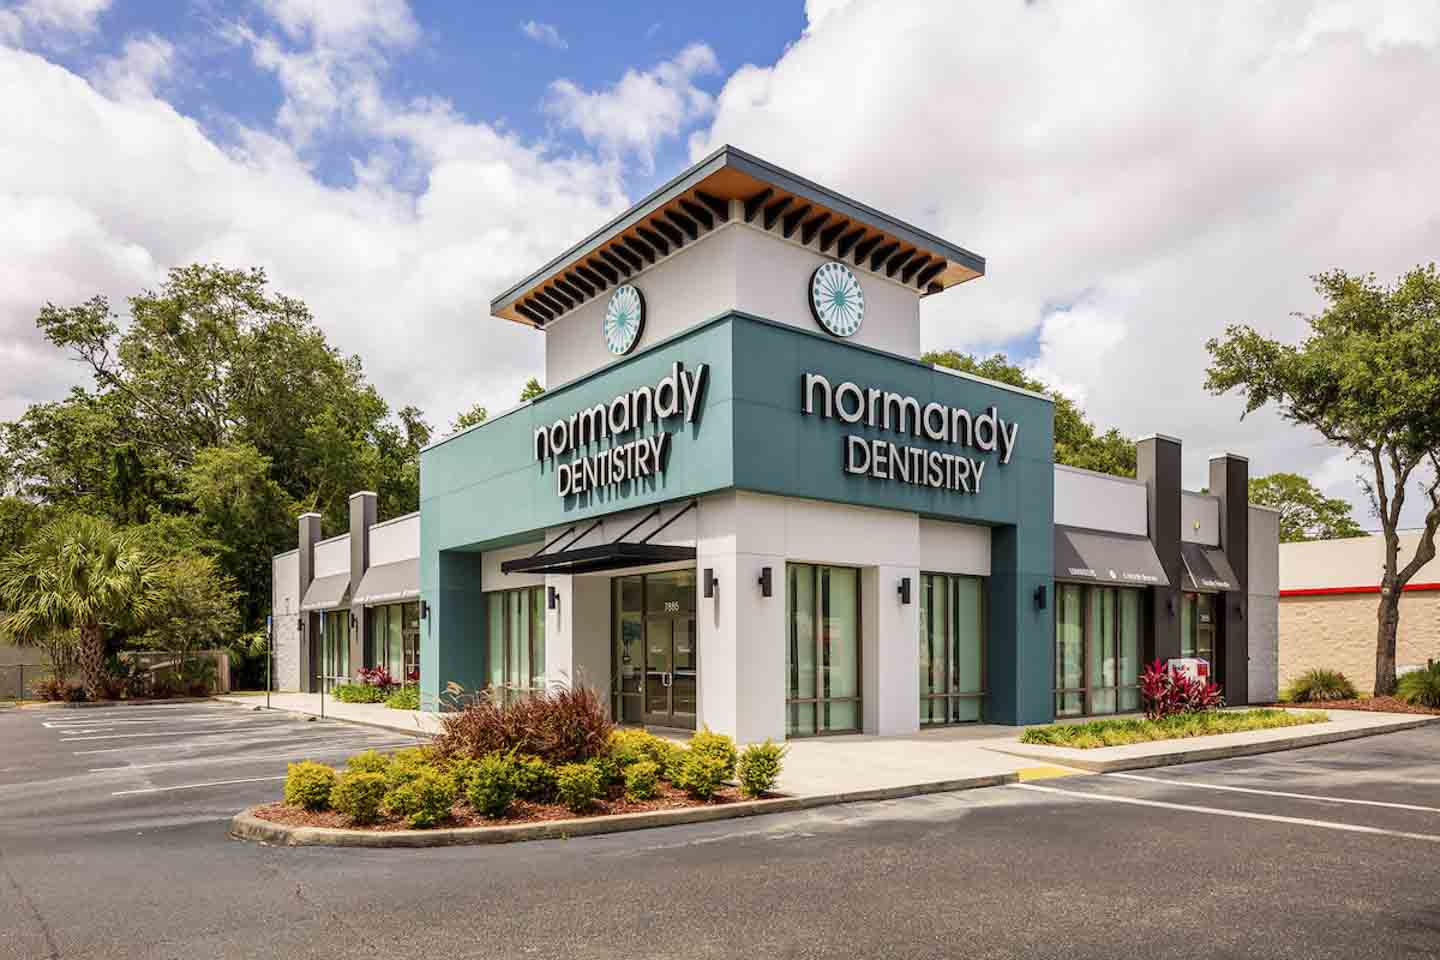 Normandy and Lakewood Dentistry, Normandy and Lakewood, Normandy Dentistry, Lakewood Dentistry, Dentist in Jacksonville, Dentist in Jacksonville Florida